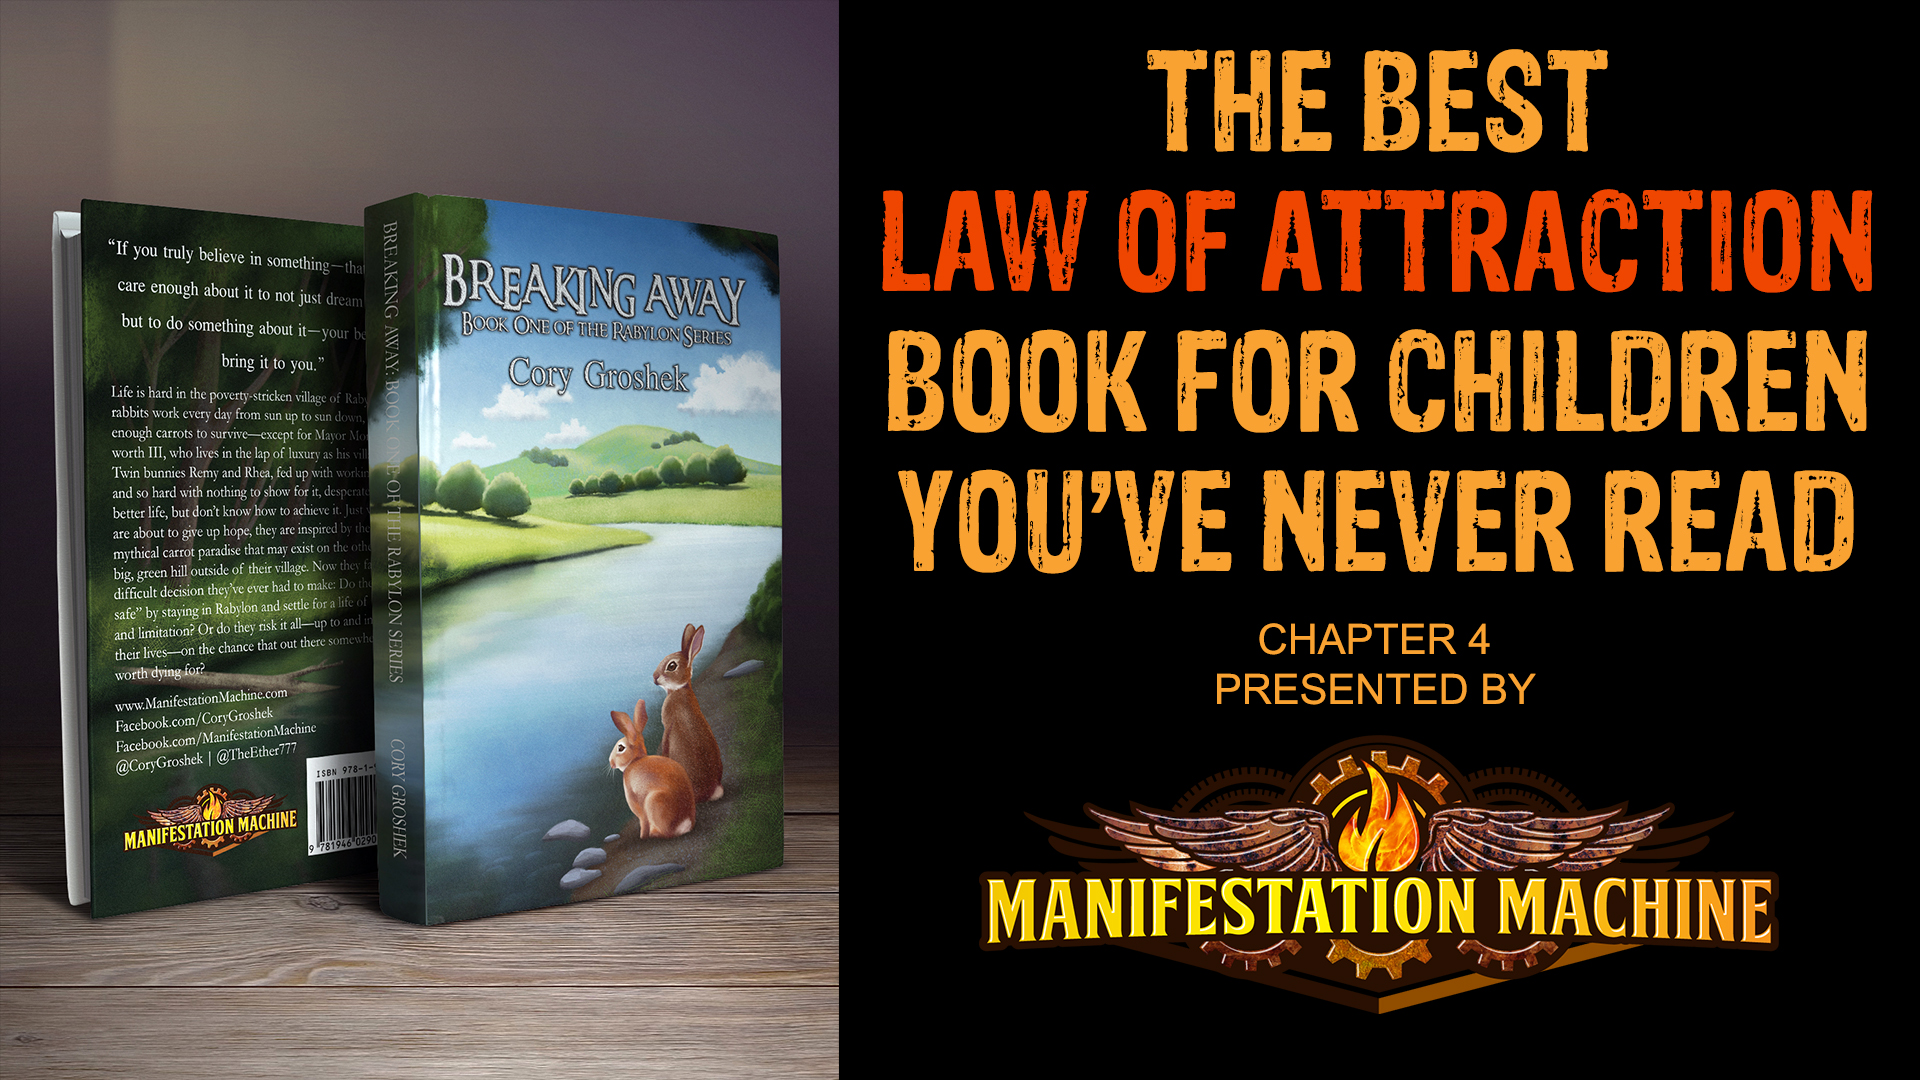 The Best Law of Attraction Book for Children You've Never Read (Chapter 4)